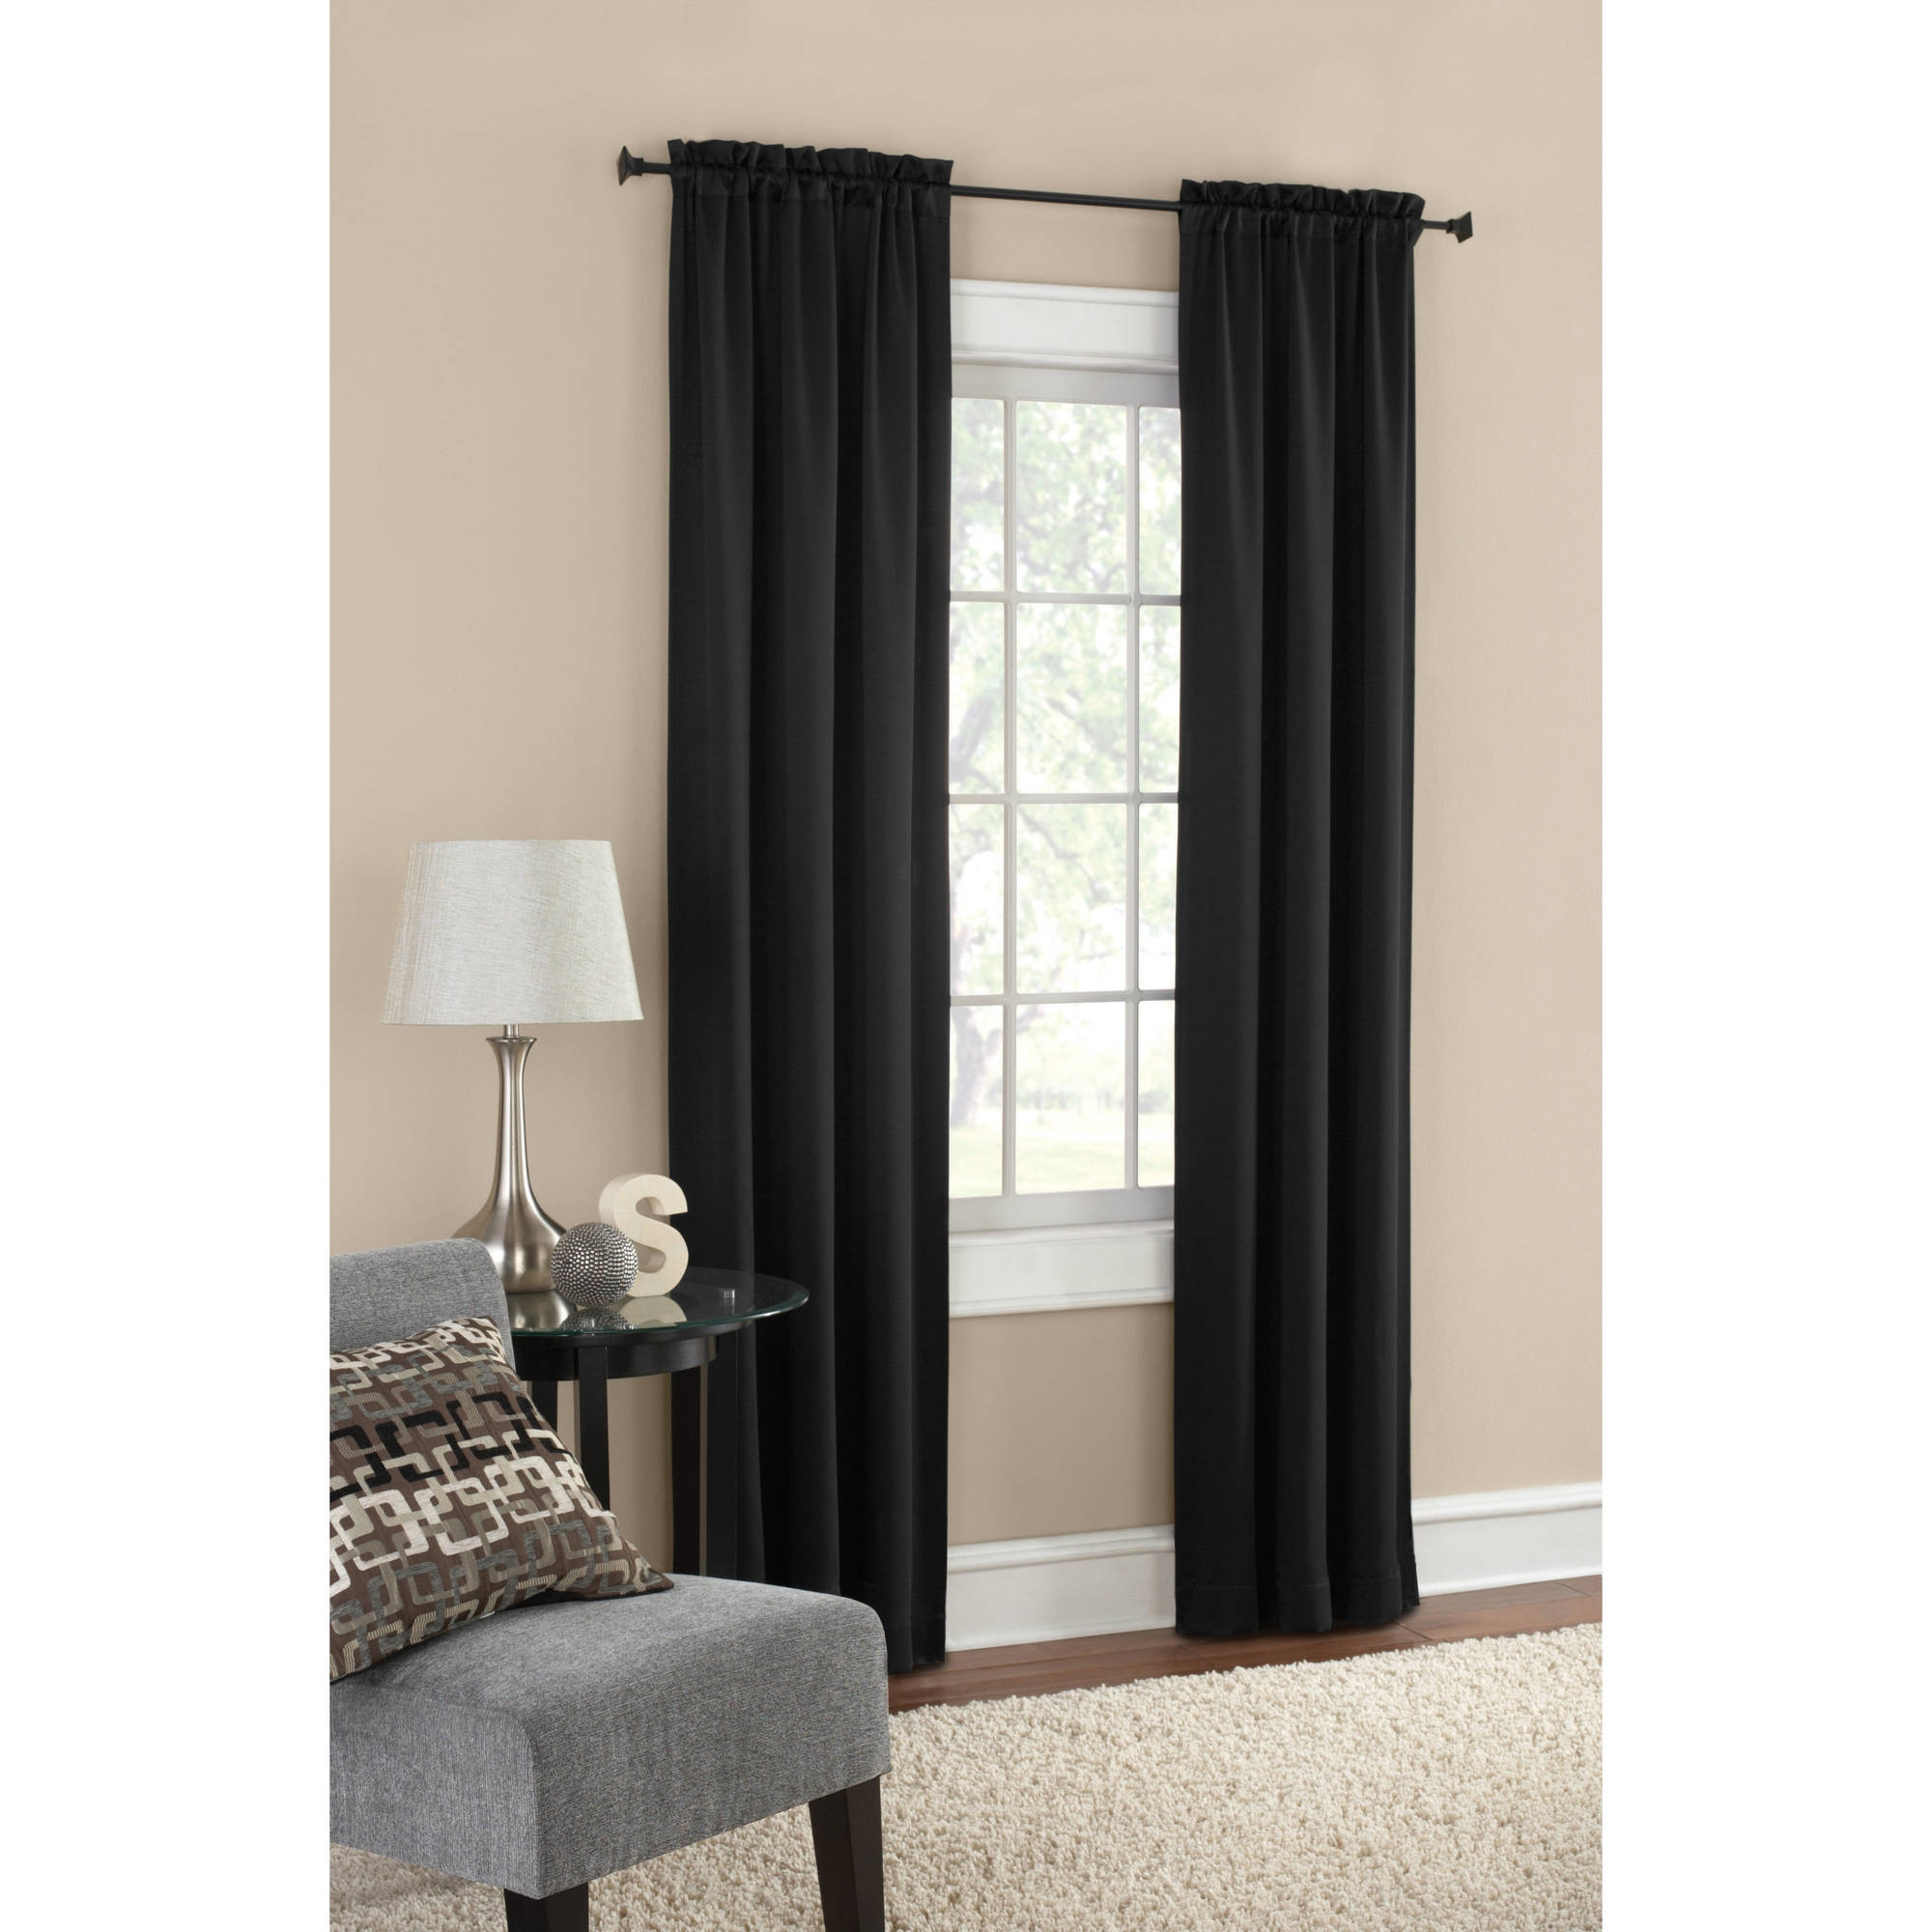 Energy Efficient Blackout Curtains Walmart With Thermal Lined Blackout Curtains (View 7 of 15)